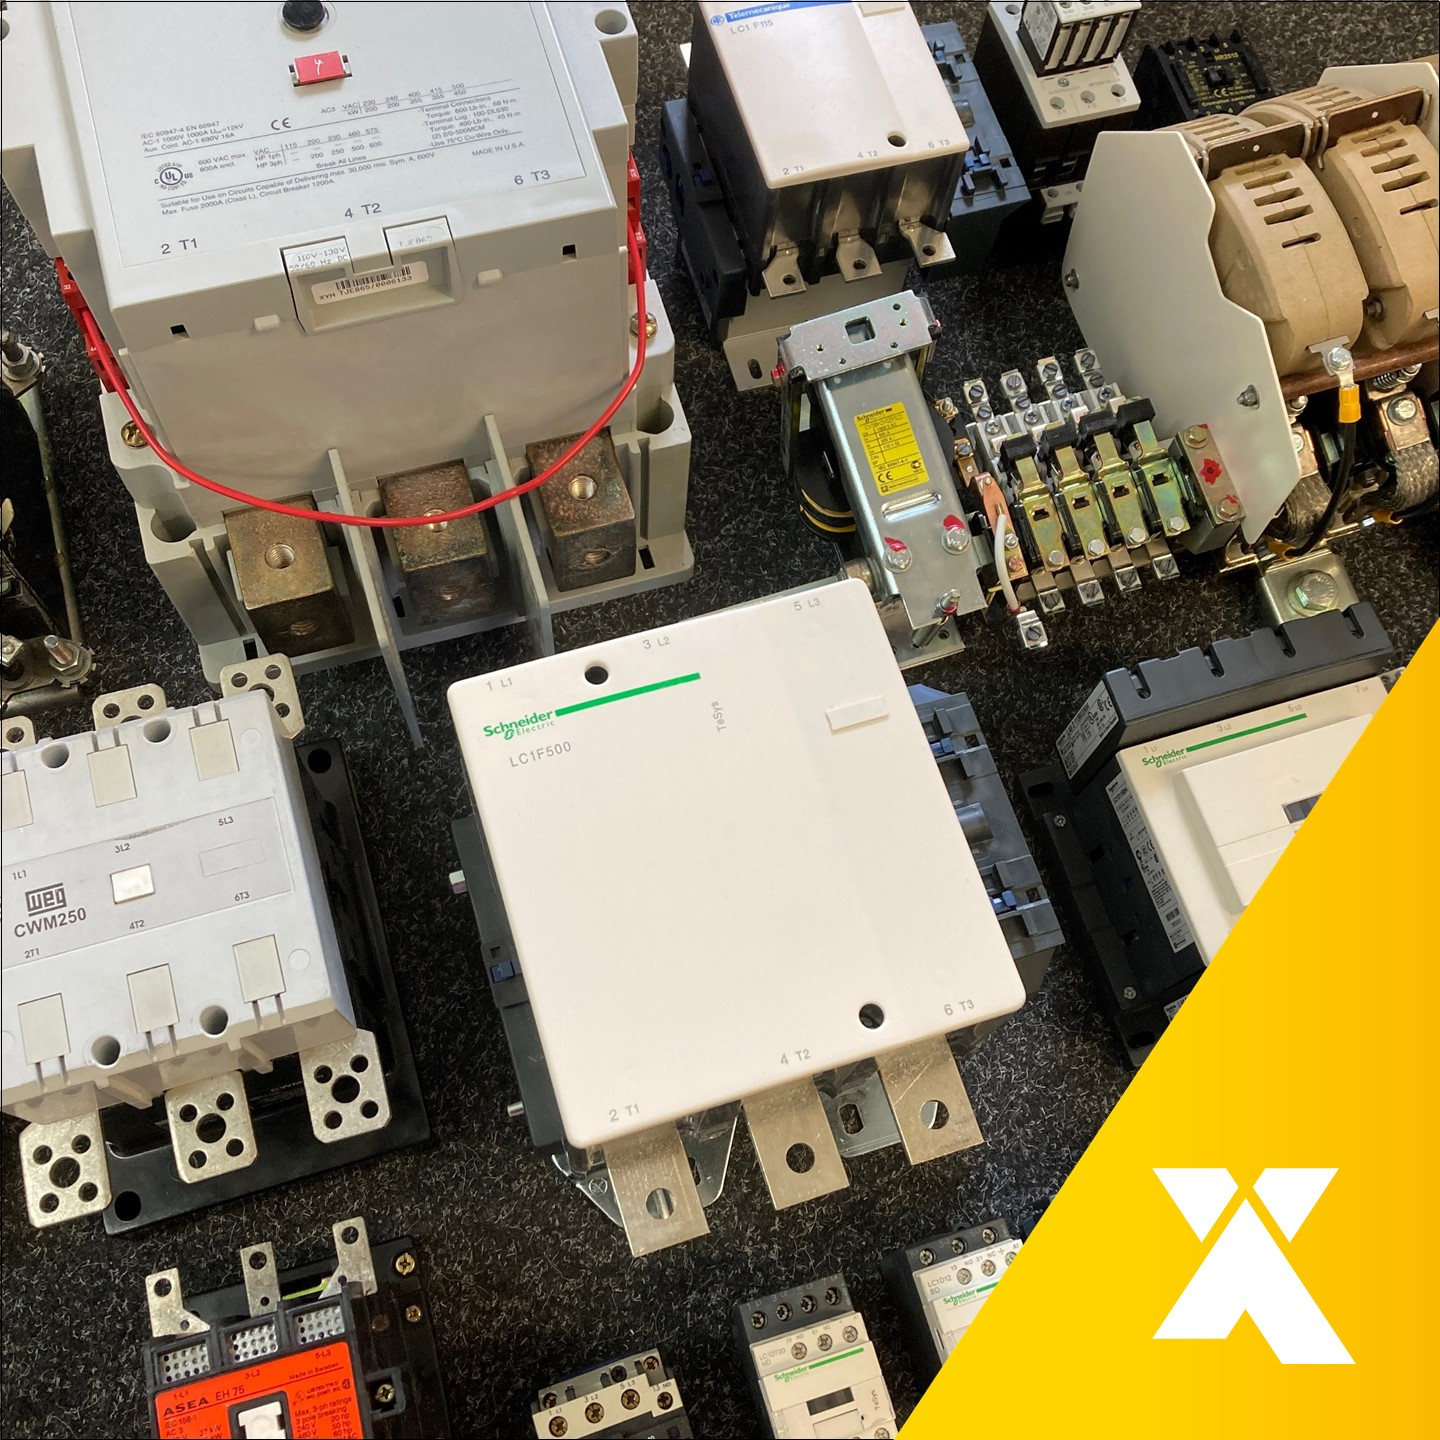 Picture taken by Axxa: Contactor group aligned different brands for cross reference